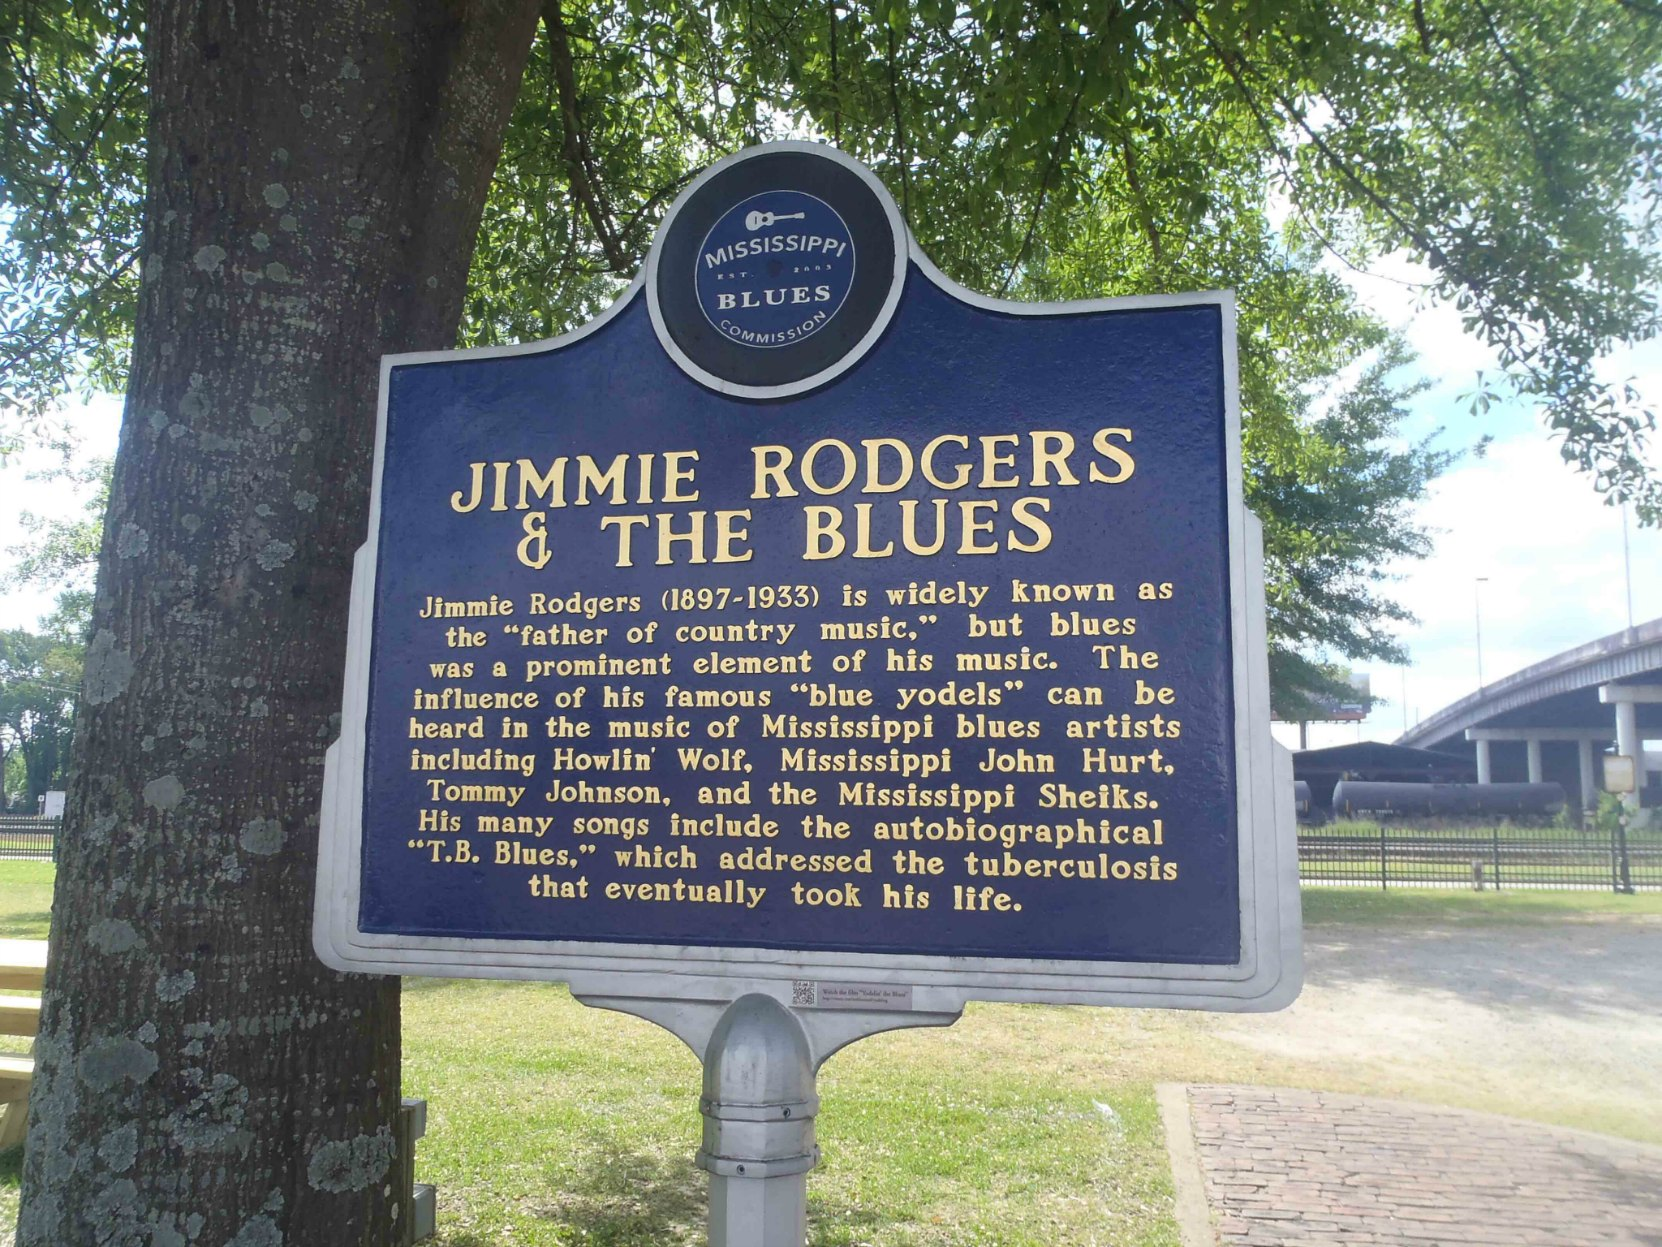 Mississippi Blues Trail marker for Jimmie Rodgers, near the old Rail Depot in Meridian, Mississippi,